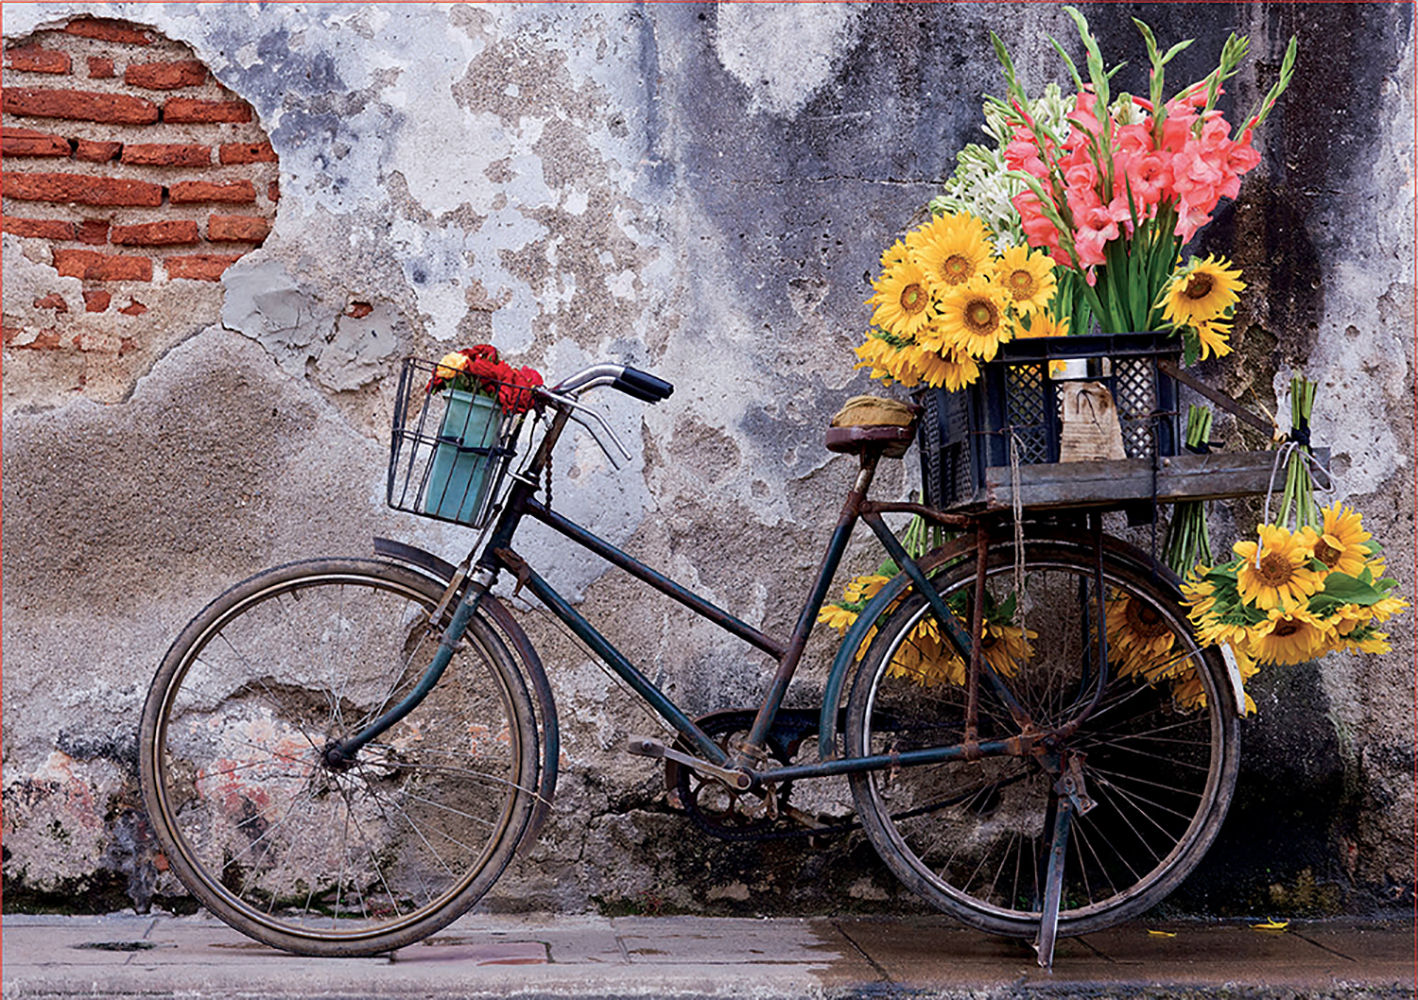 Puzzle 500 pieces - Bicycle with flowers